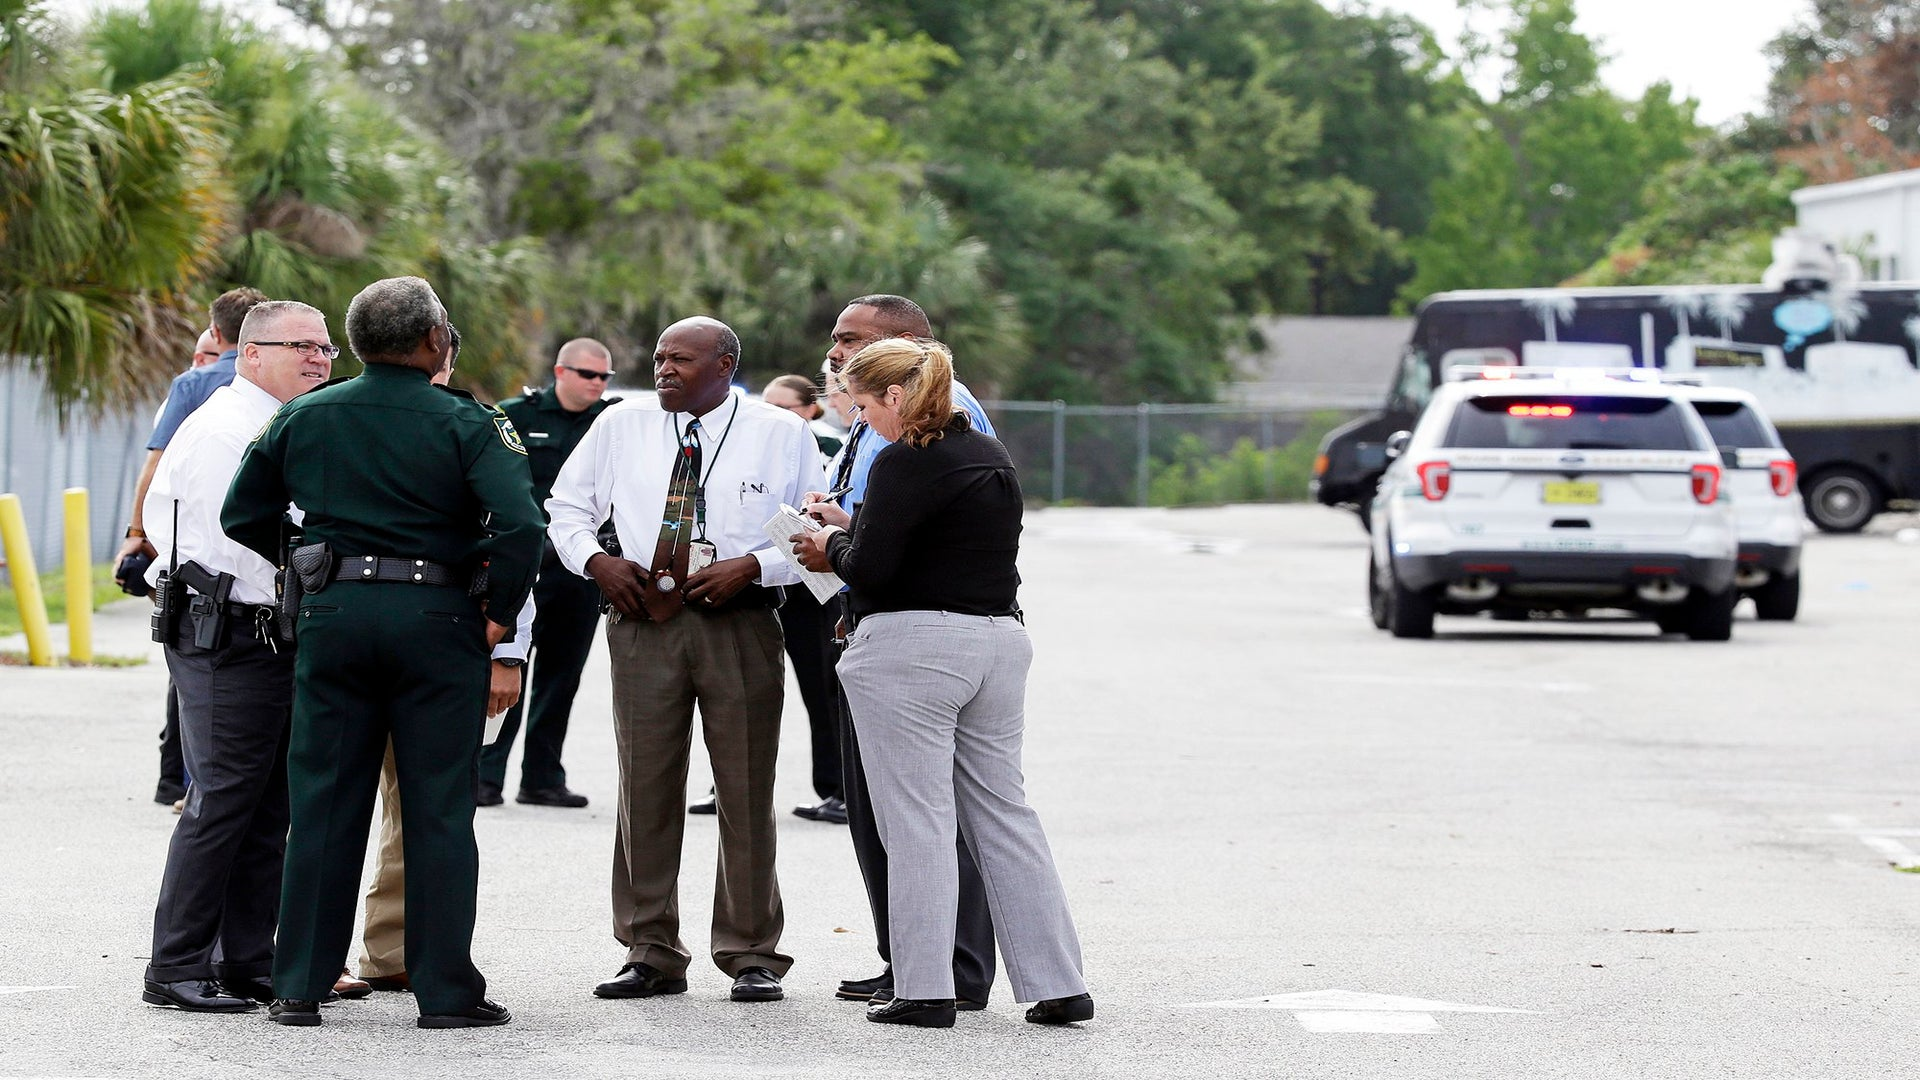 'Multiple Fatalities' Reported After Shooting Near Orlando, Authorities Say